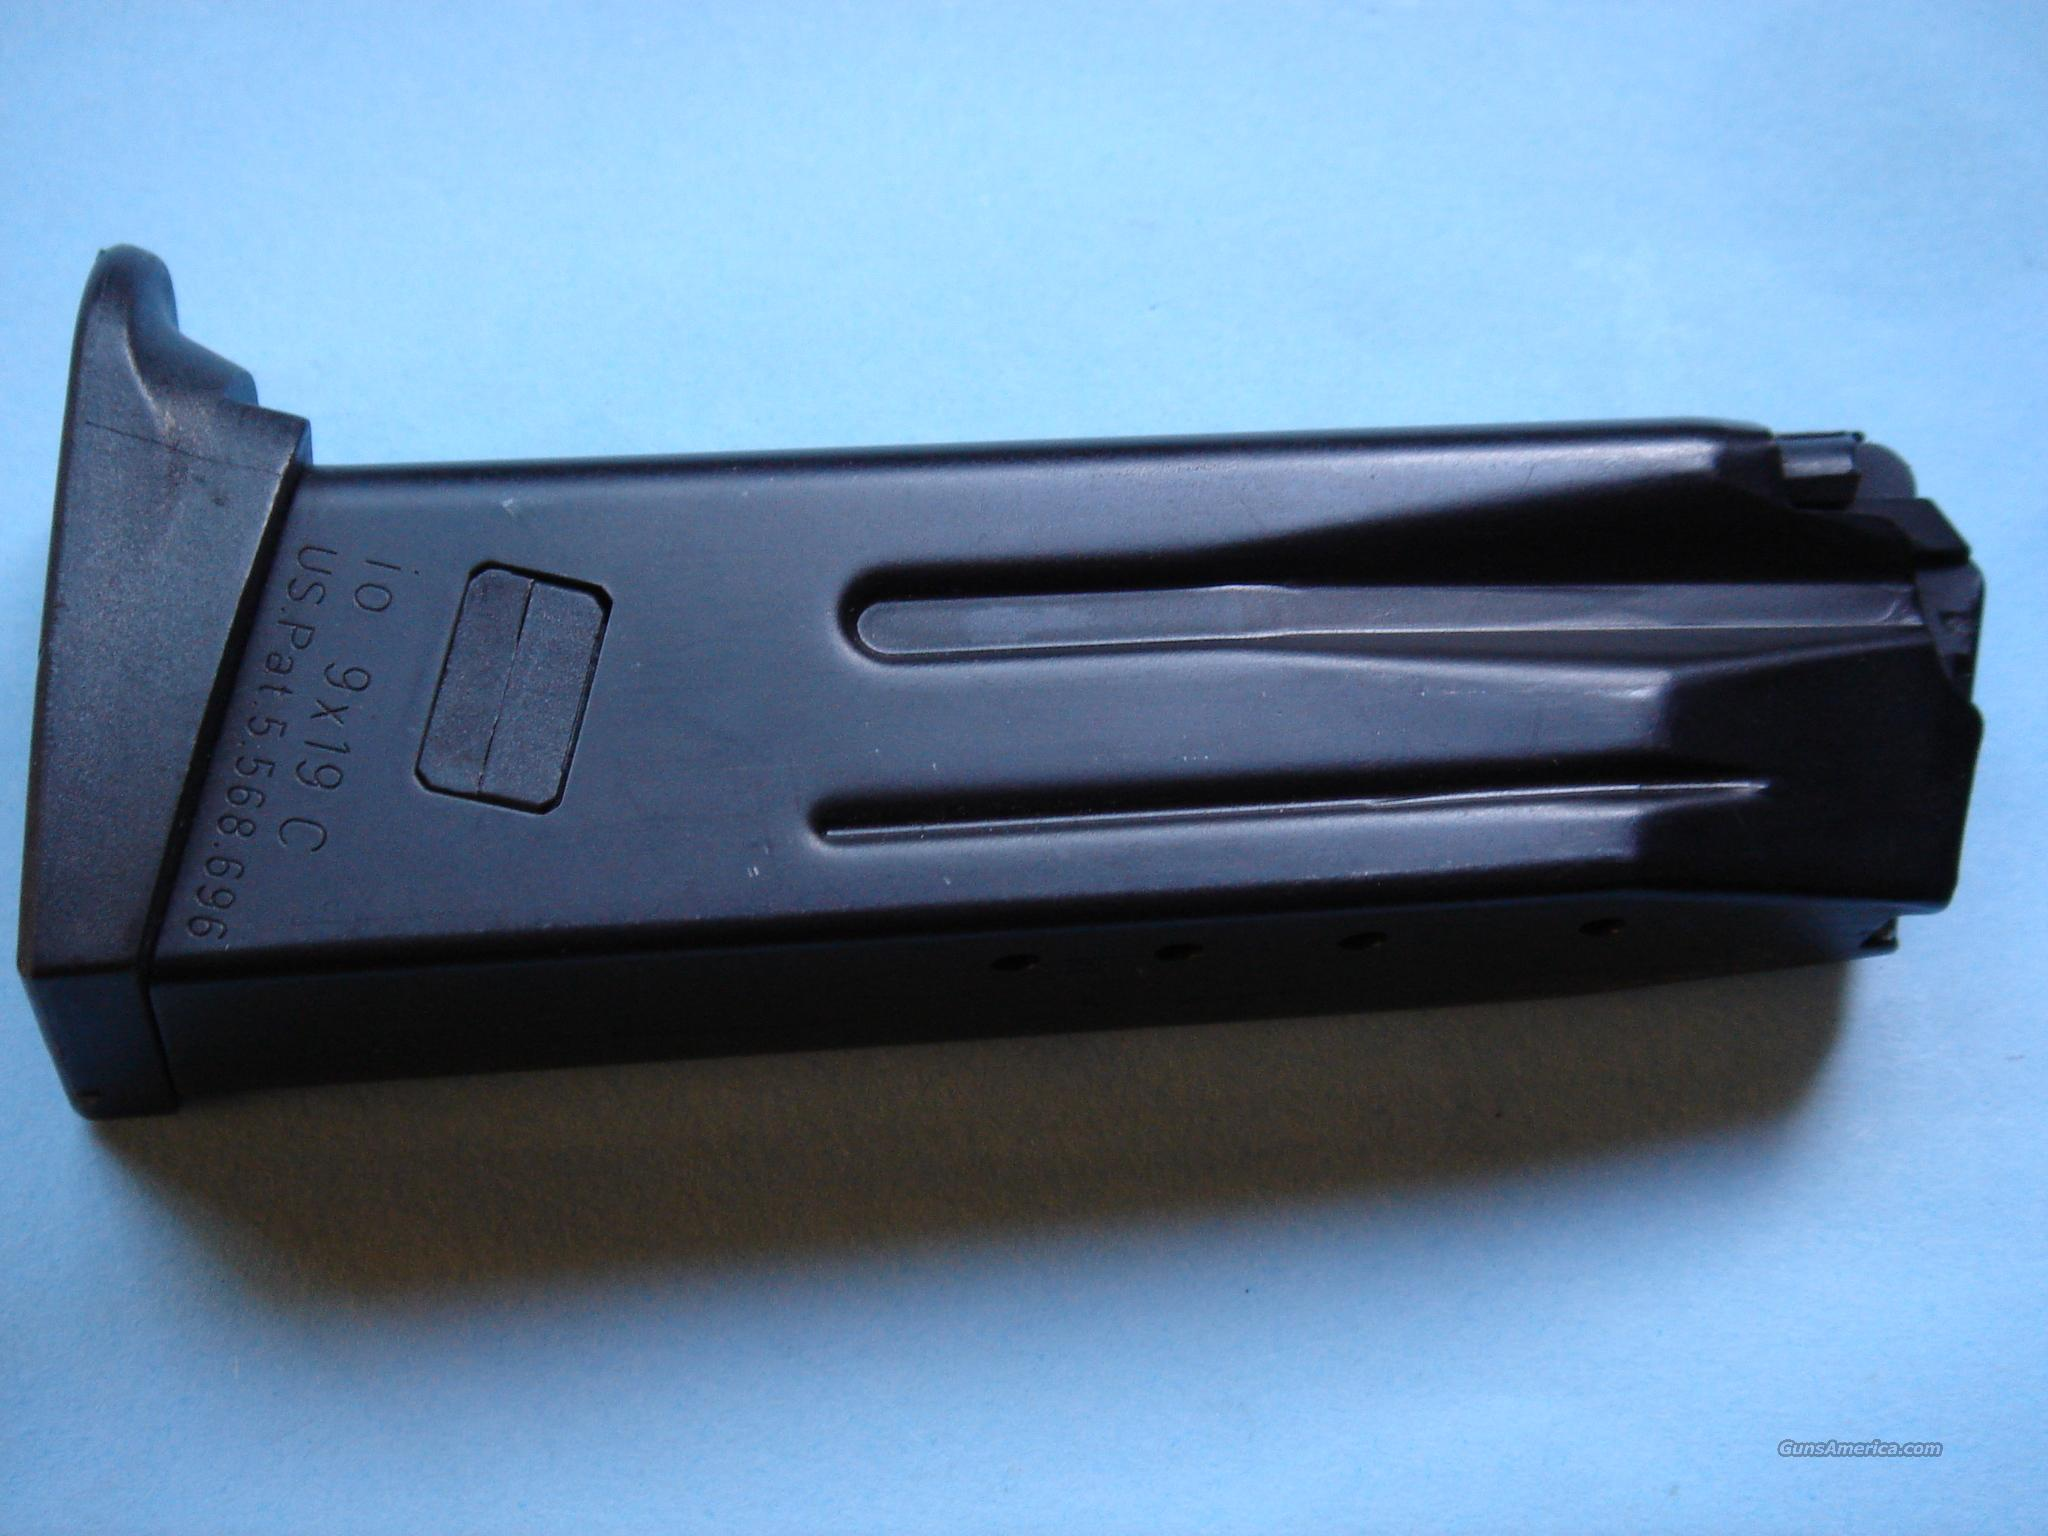 HECKLER & KOCH USP COMPACT MAGAZINE 10RD 40 S&W, HK USP-C 40SW MAG  Non-Guns > Magazines & Clips > Pistol Magazines > Other